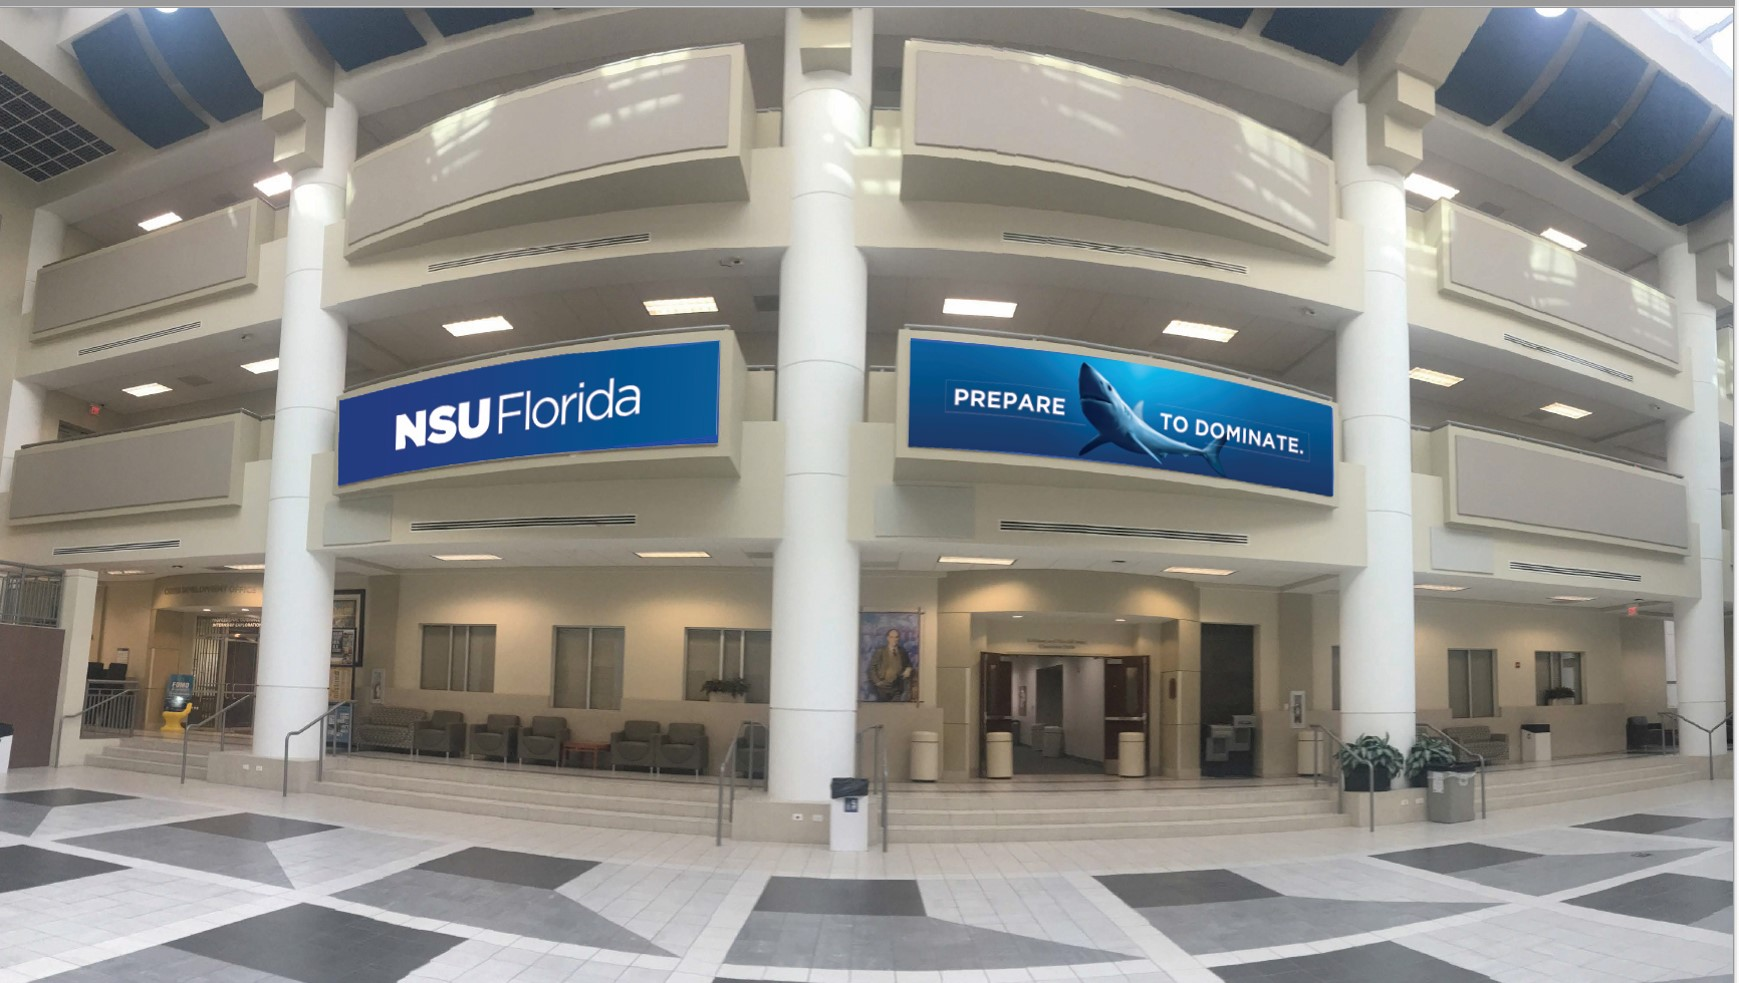 NSU Florida on campus display